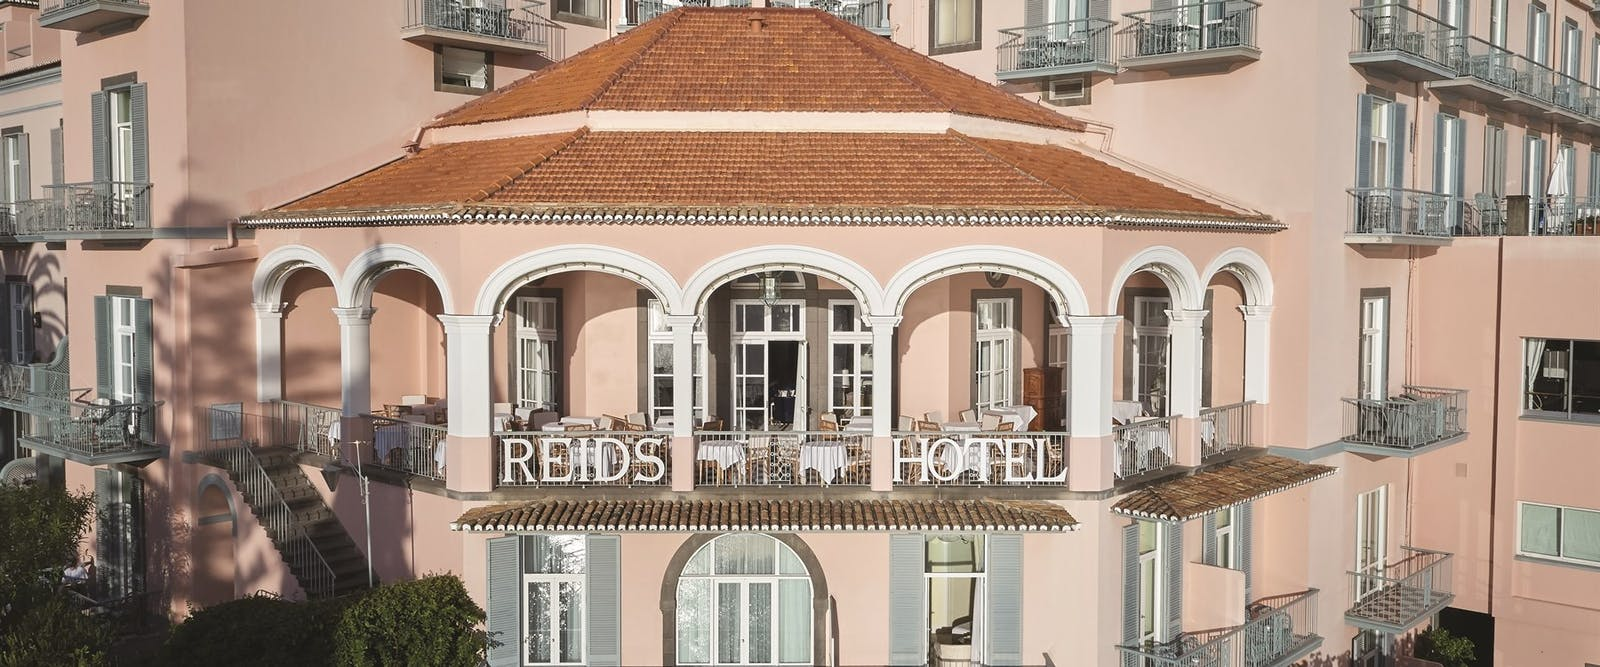 Front Entrance at Belmond Reids Palace, Madeira, Portugal